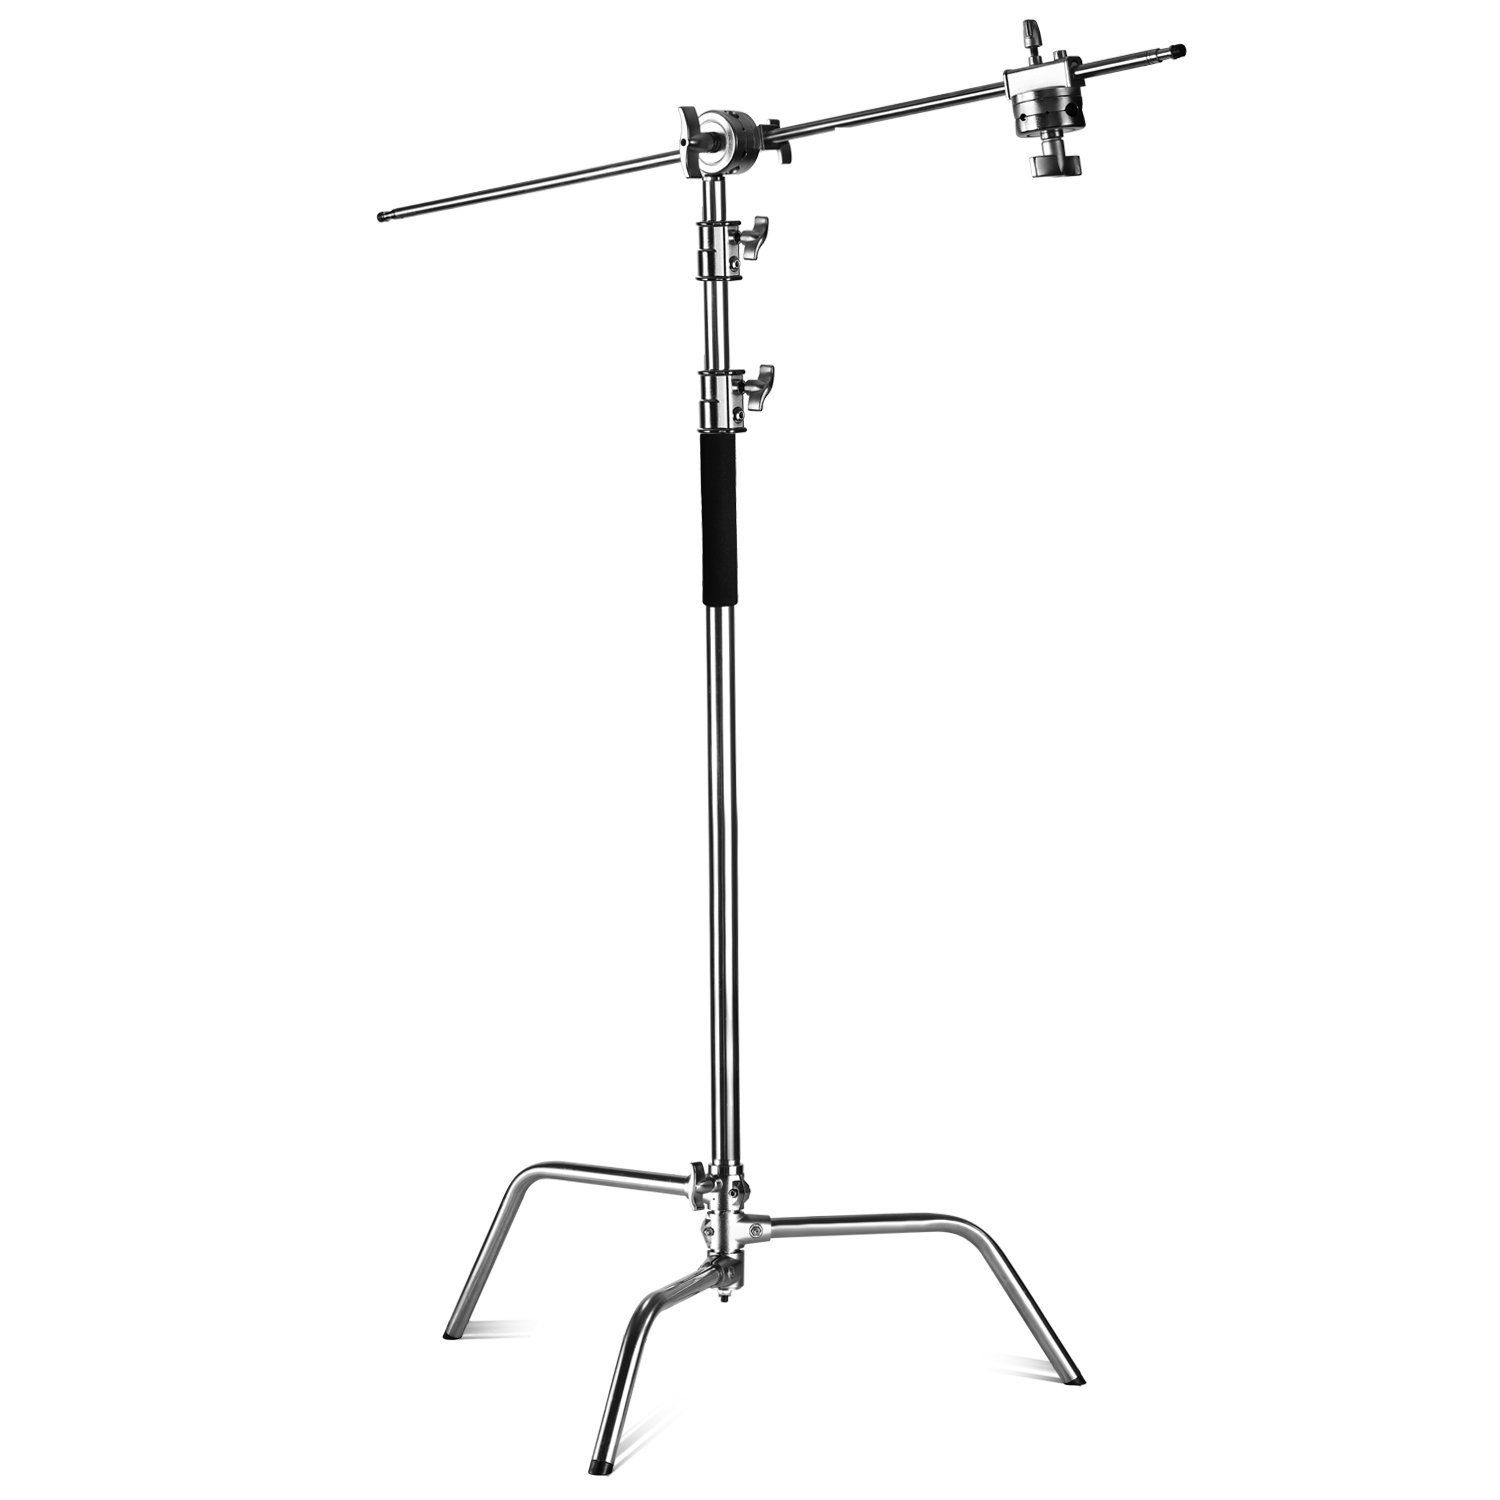 Neewer Pro 100 Metal Max Height 10ft 305cm Adjustable Reflector Stand With 4ft 120cm Holding Arm And 2 Pie Reflector Photography Studio Photography Reflectors